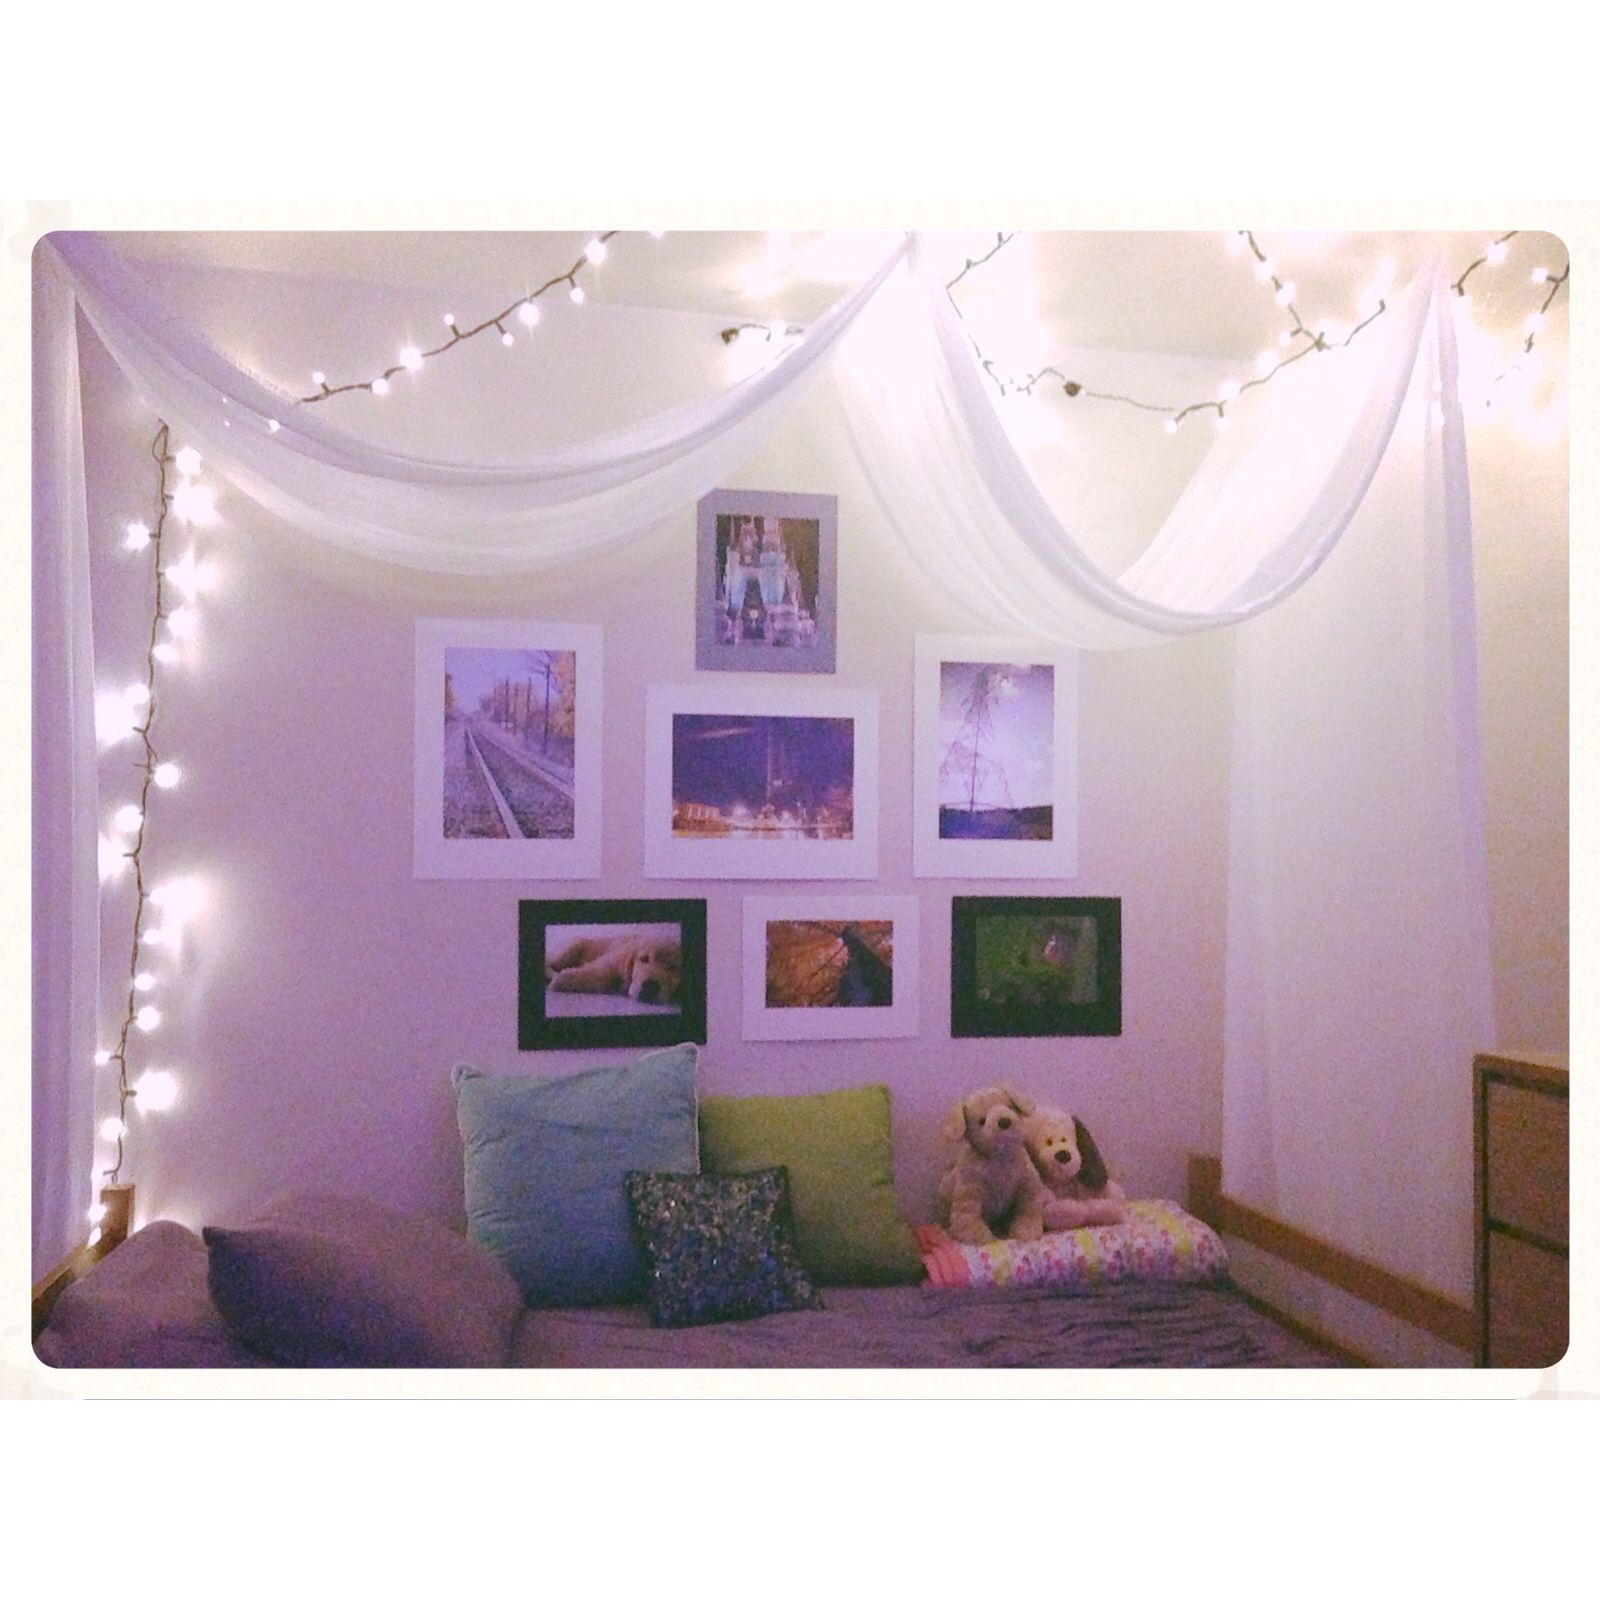 Christmas Lights, Diy Canopy, And Pictures To Help Decorate My Dorm Room:)